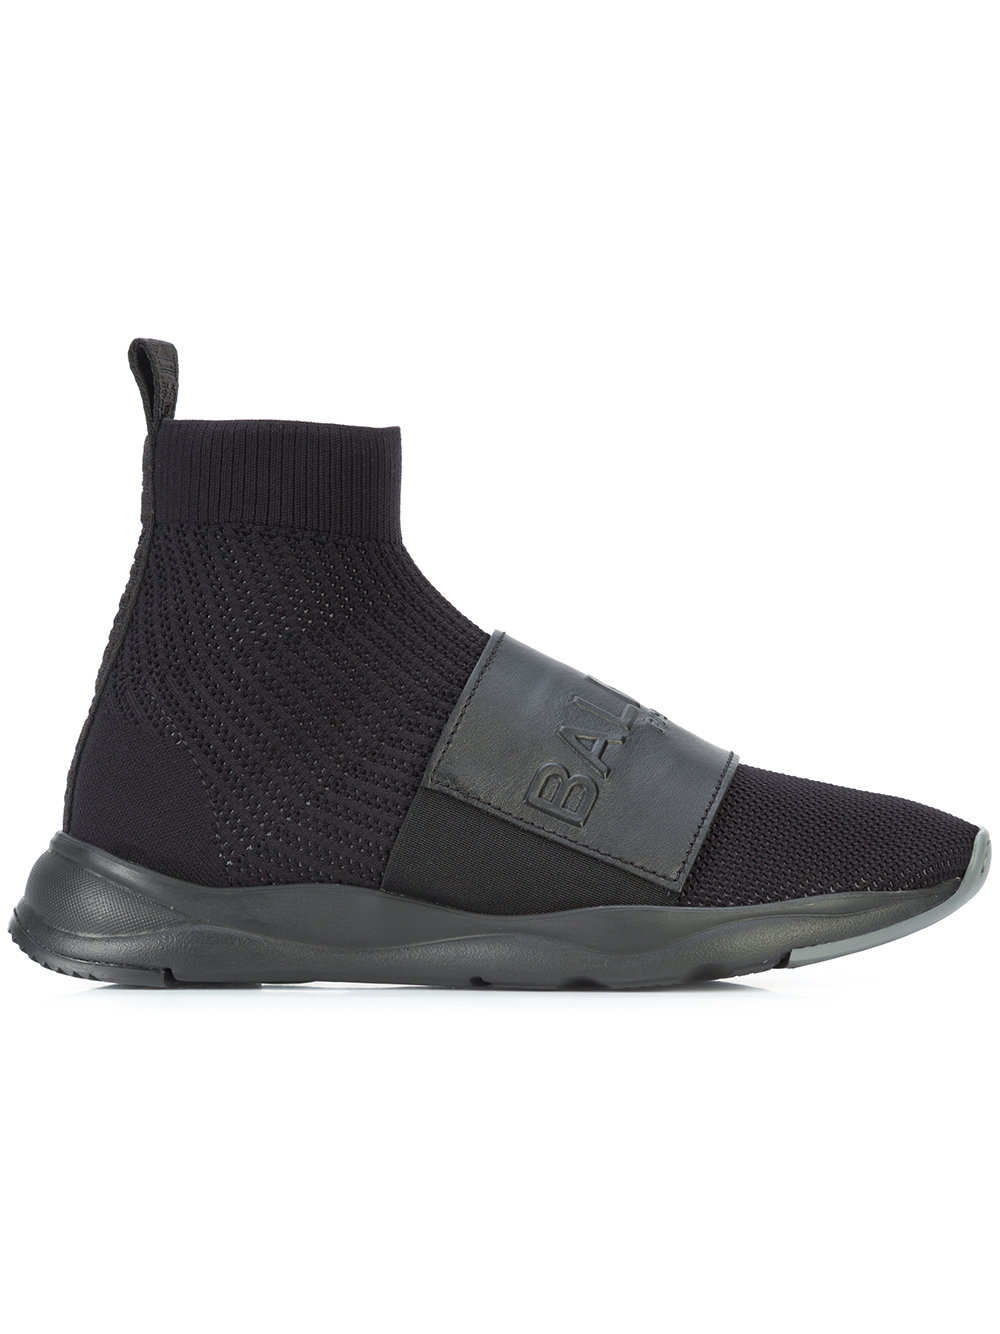 Balmain   Logo Strap Sock Boot Trainer